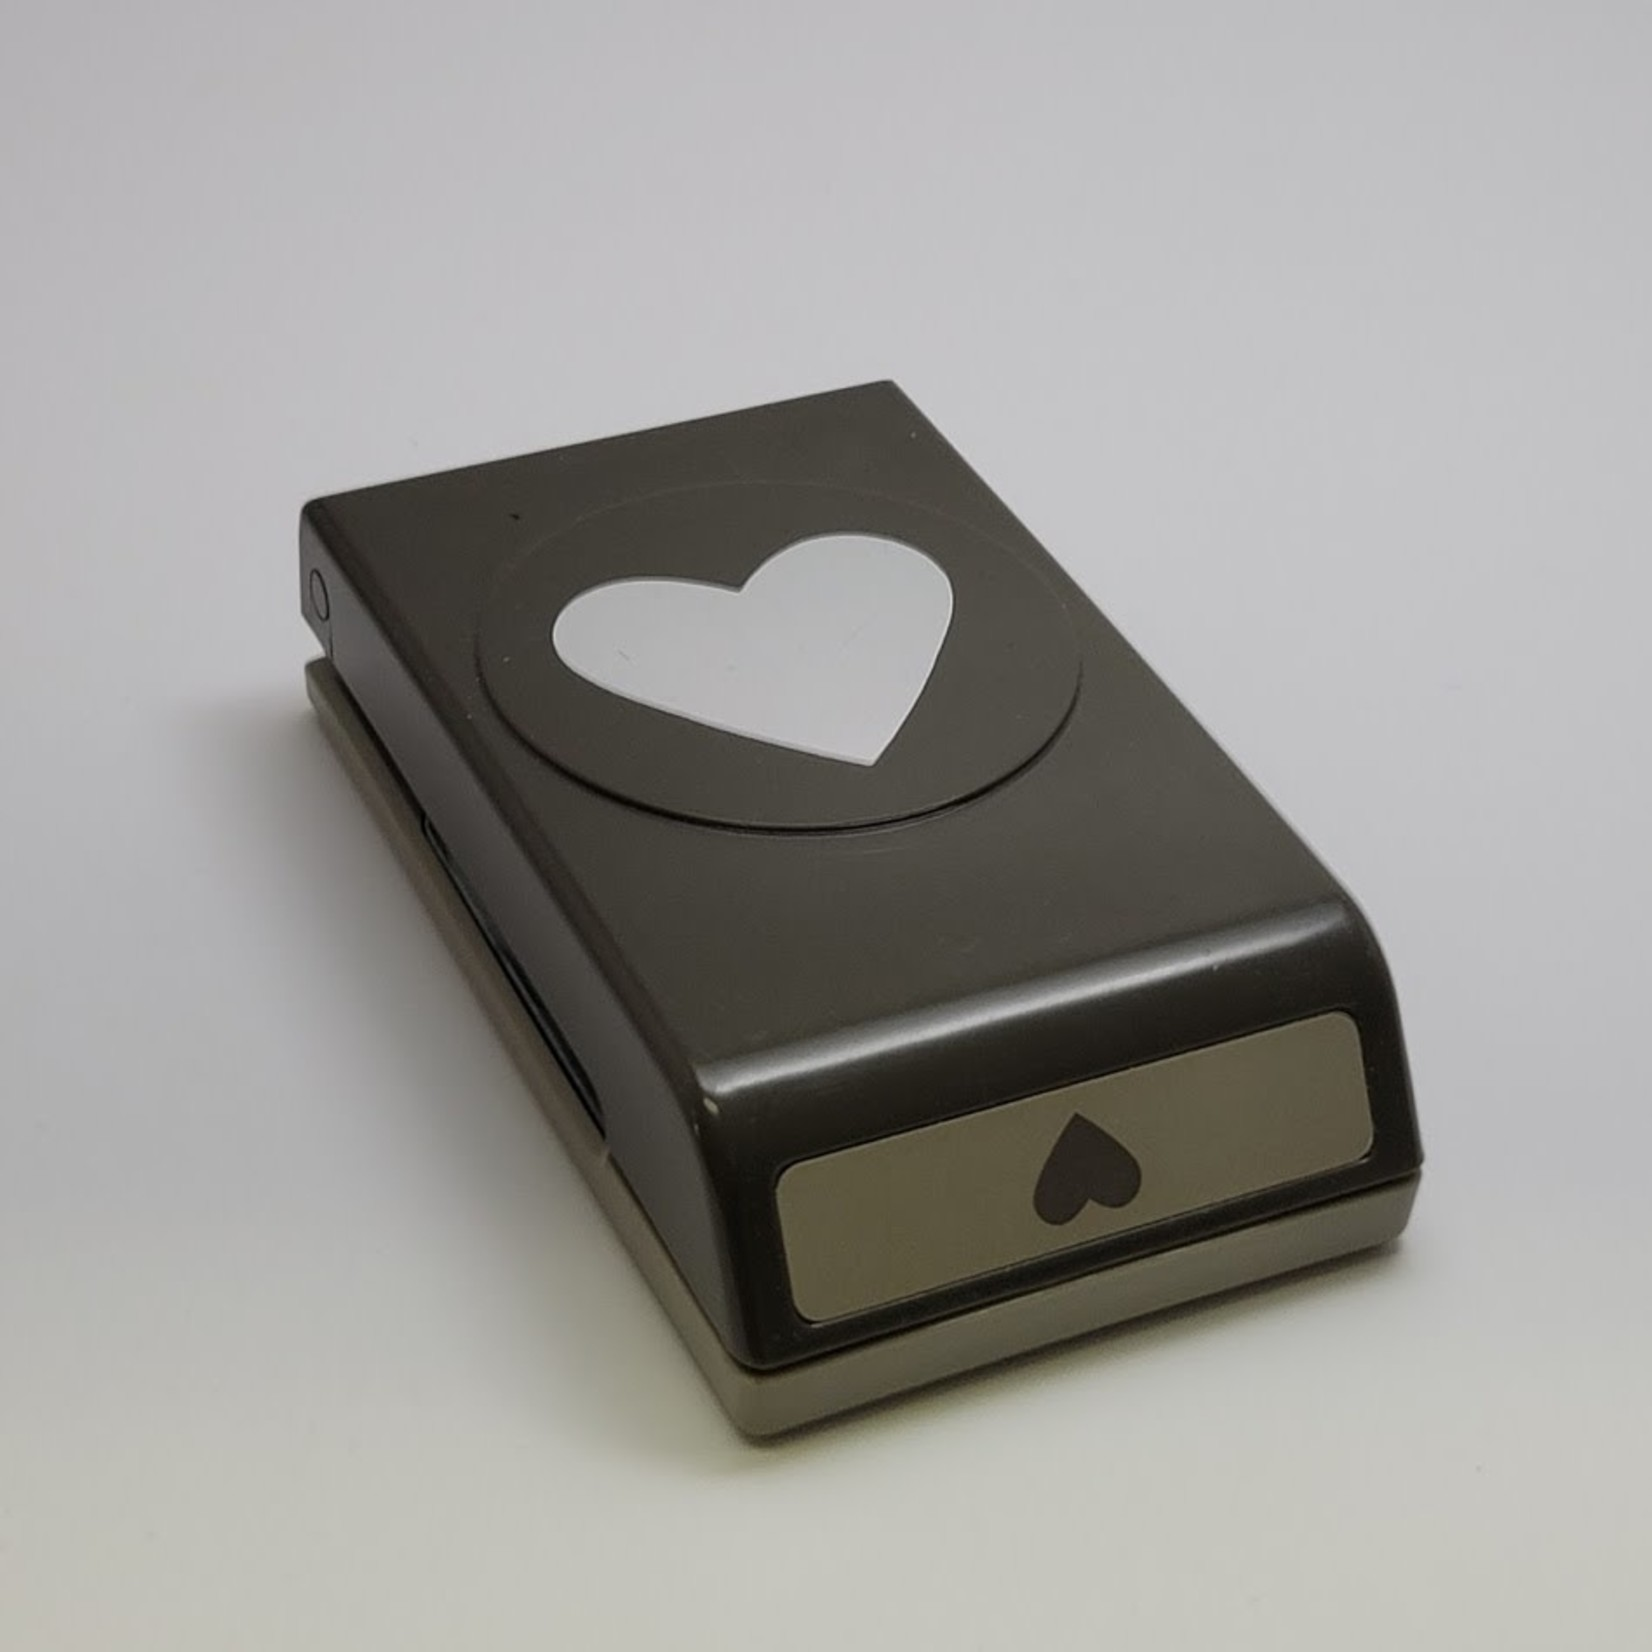 Stampin' Up Stampin' Up - Punch - Heart